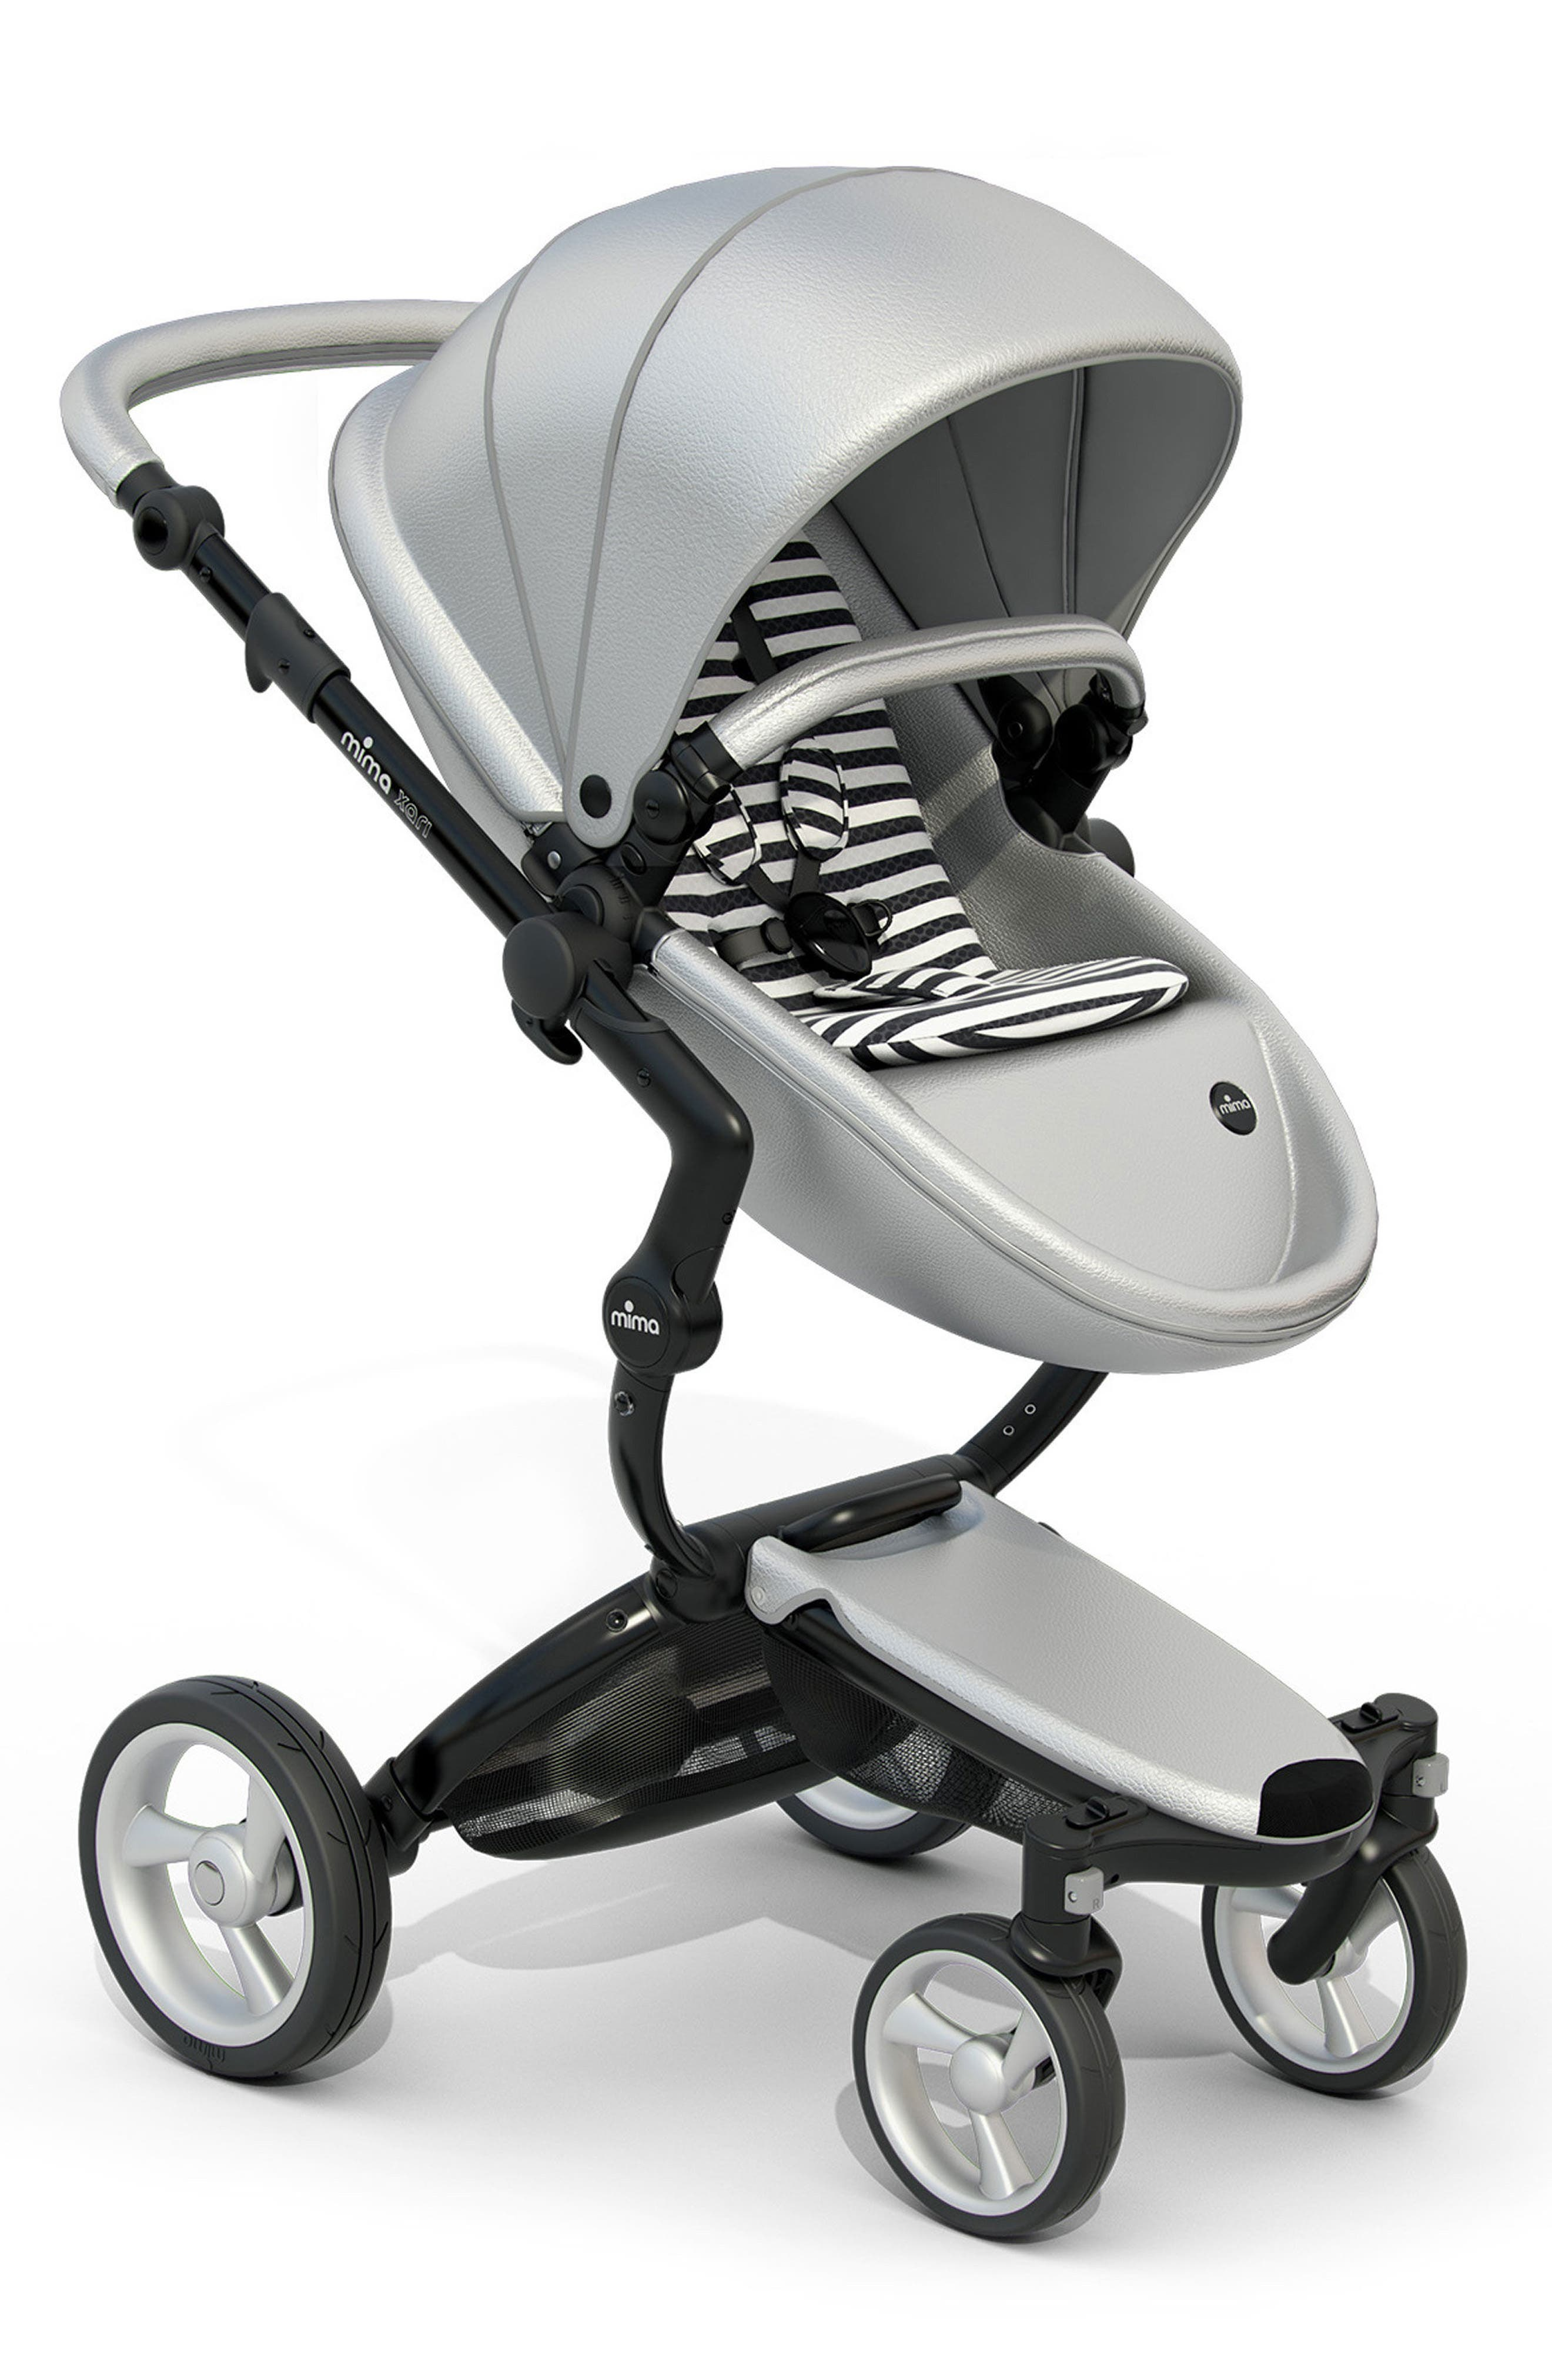 Xari Black Chassis Stroller with Reversible Reclining Seat & Carrycot,                             Main thumbnail 1, color,                             BLK/WHT